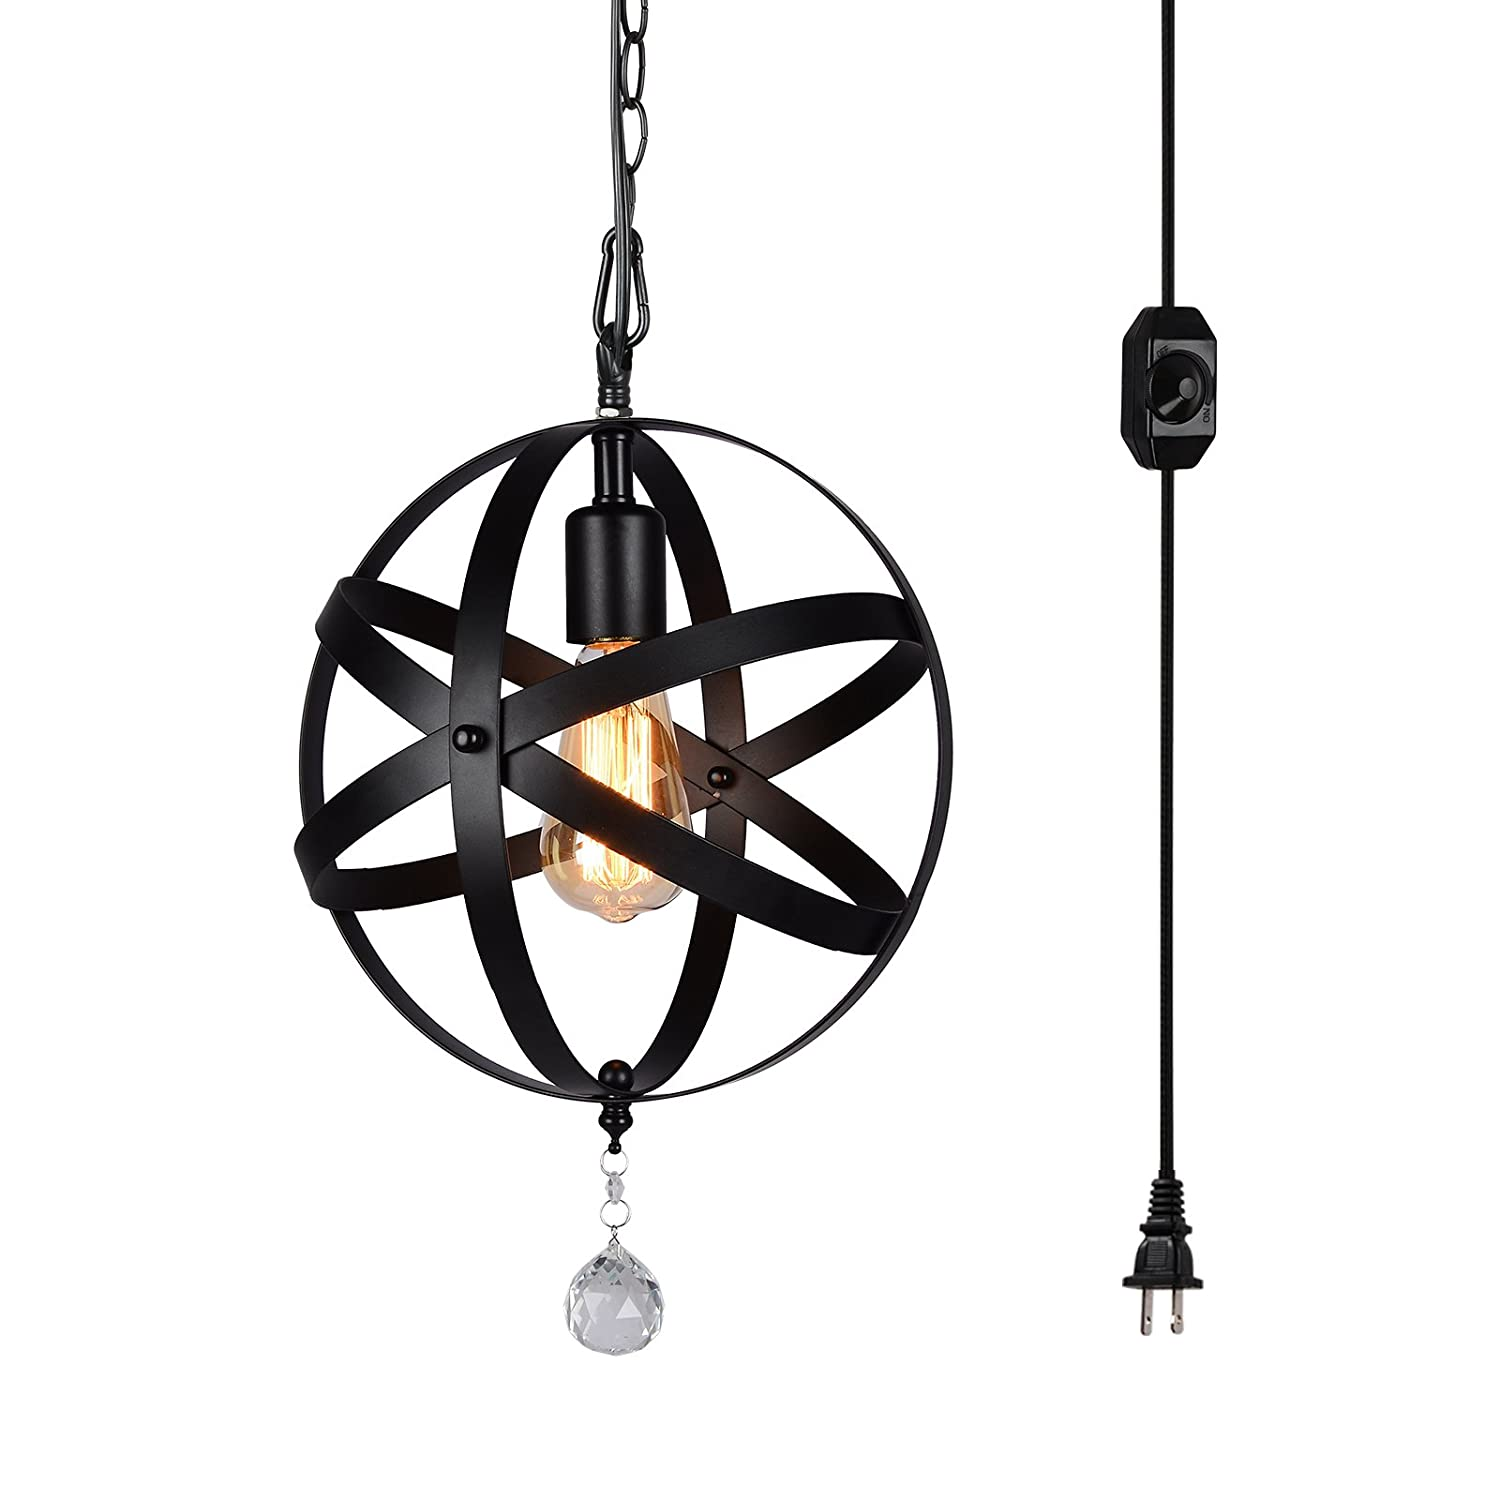 HMVPL Plug In Industrial Globe Pendant Lights With 15 Ft Hanging Cord And Dimmable On